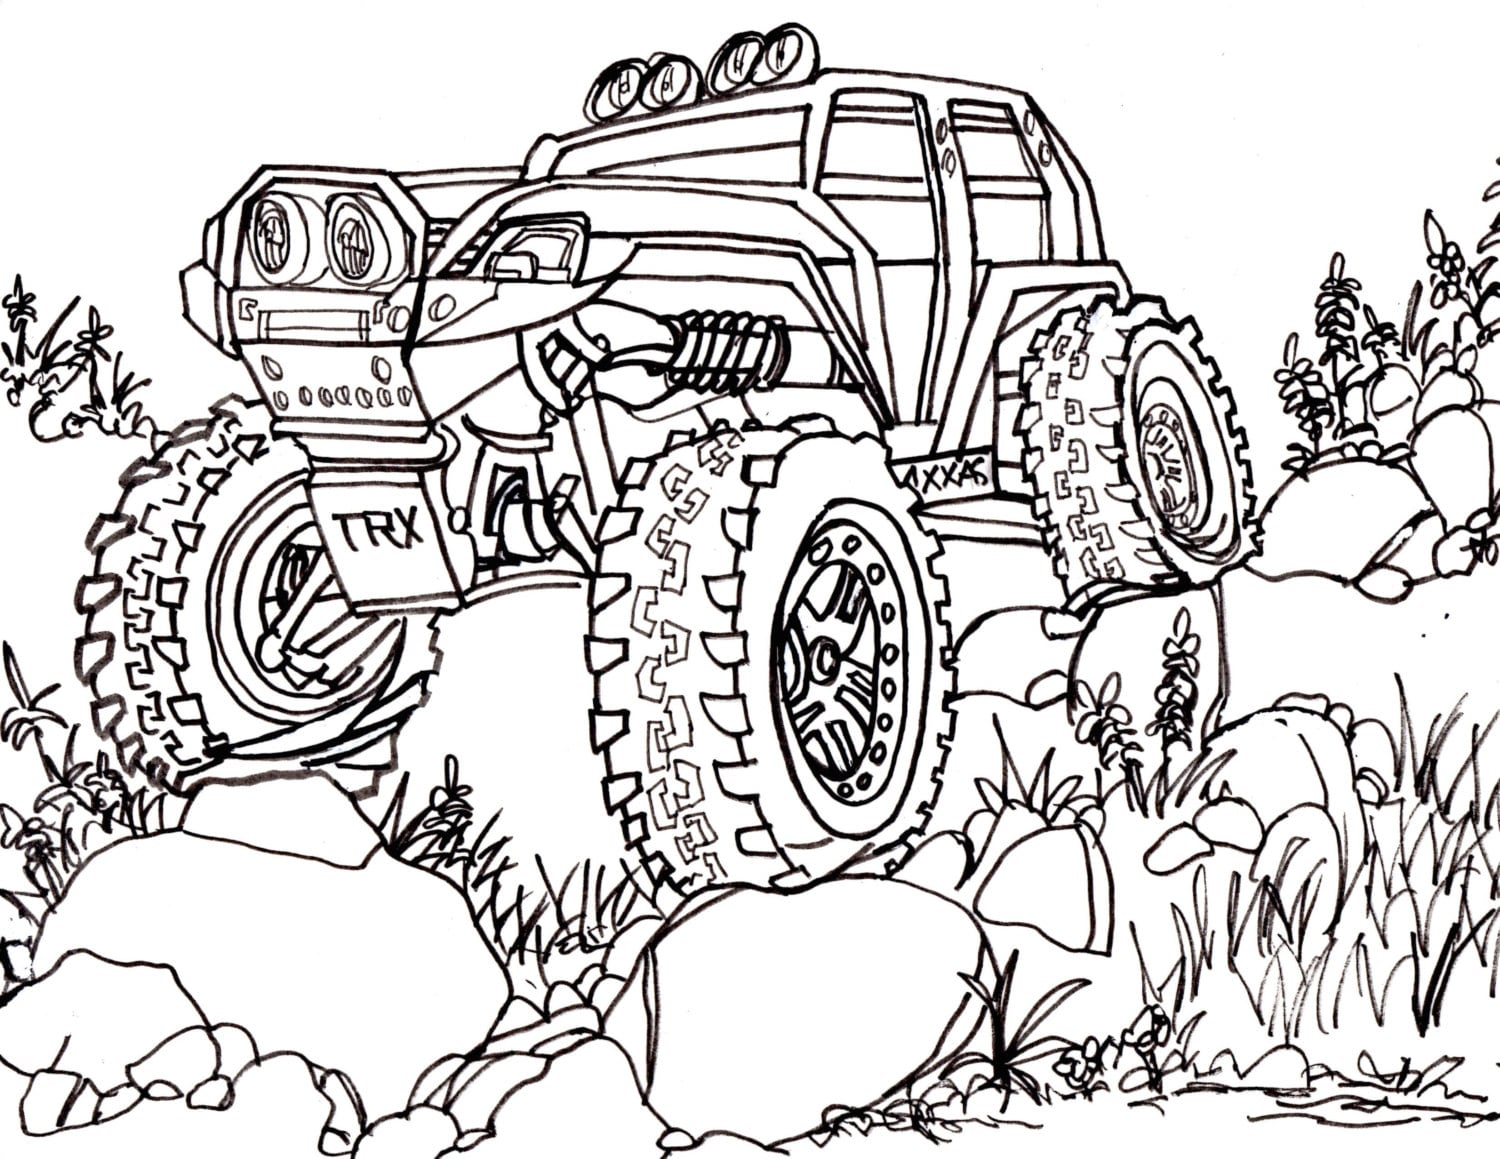 rc trucks off road 4x4 with Traxxas Summit Trail Truck Drawing Truck on Ford F354 Monster Truck Vs Johnson Valley Rocks additionally Cobra in addition Jeep  anche likewise File Truck Trial Tatra 813 moreover Traxxas Summit Trail Truck Drawing Truck.